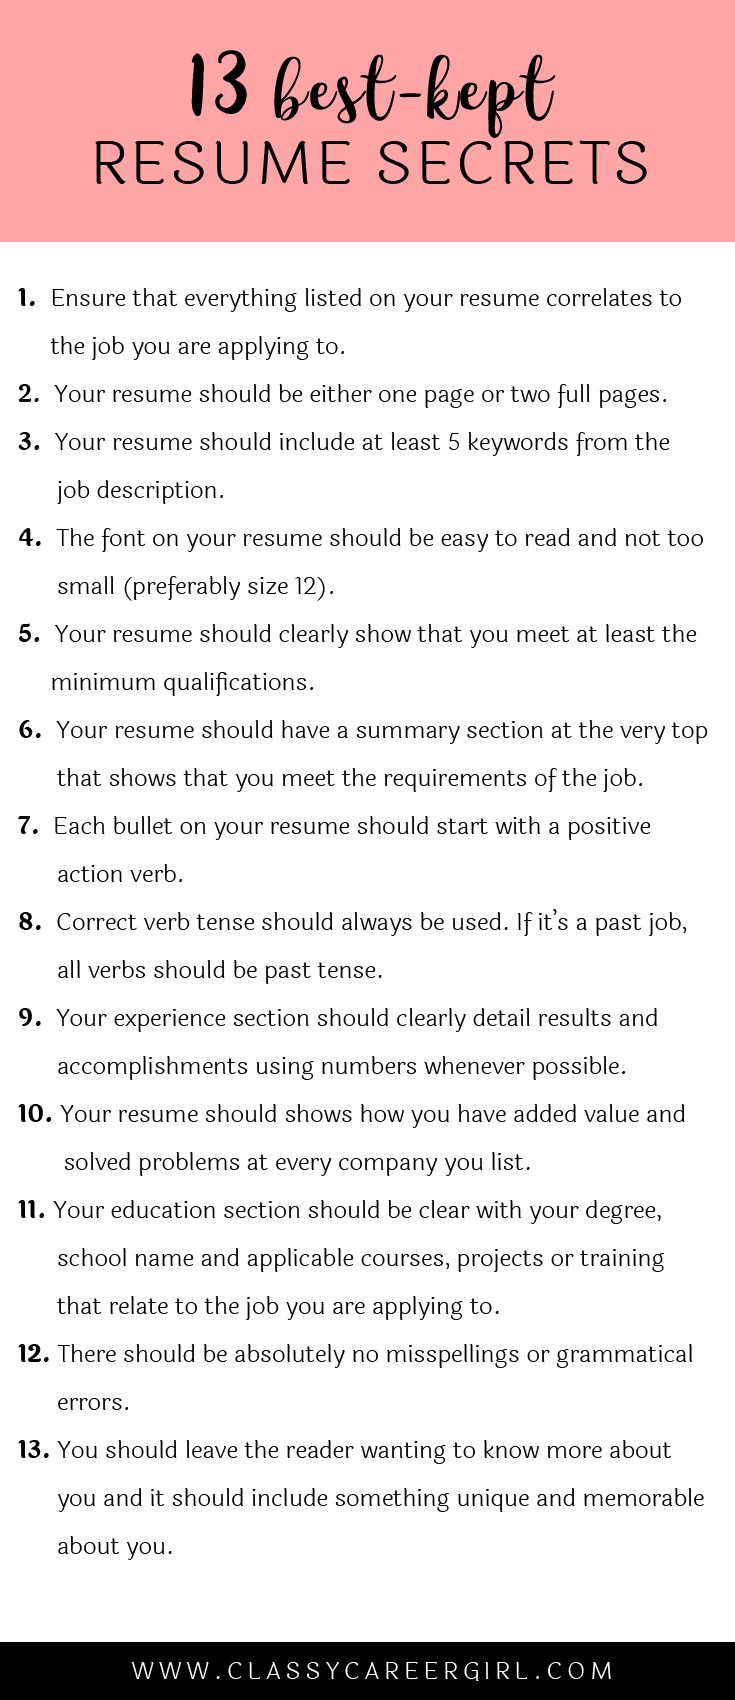 Opposenewapstandardsus  Gorgeous  Ideas About Resume On Pinterest  Cv Format Resume Cv And  With Goodlooking Some Hiring Managers Will Toss Your Resume Out If You Dont Know These  With Easy On The Eye How To Write A Resume For A First Job Also Job Title On Resume In Addition Powerful Resume And Ksa Resume As Well As Printable Resume Builder Additionally Skills To Include In A Resume From Pinterestcom With Opposenewapstandardsus  Goodlooking  Ideas About Resume On Pinterest  Cv Format Resume Cv And  With Easy On The Eye Some Hiring Managers Will Toss Your Resume Out If You Dont Know These  And Gorgeous How To Write A Resume For A First Job Also Job Title On Resume In Addition Powerful Resume From Pinterestcom